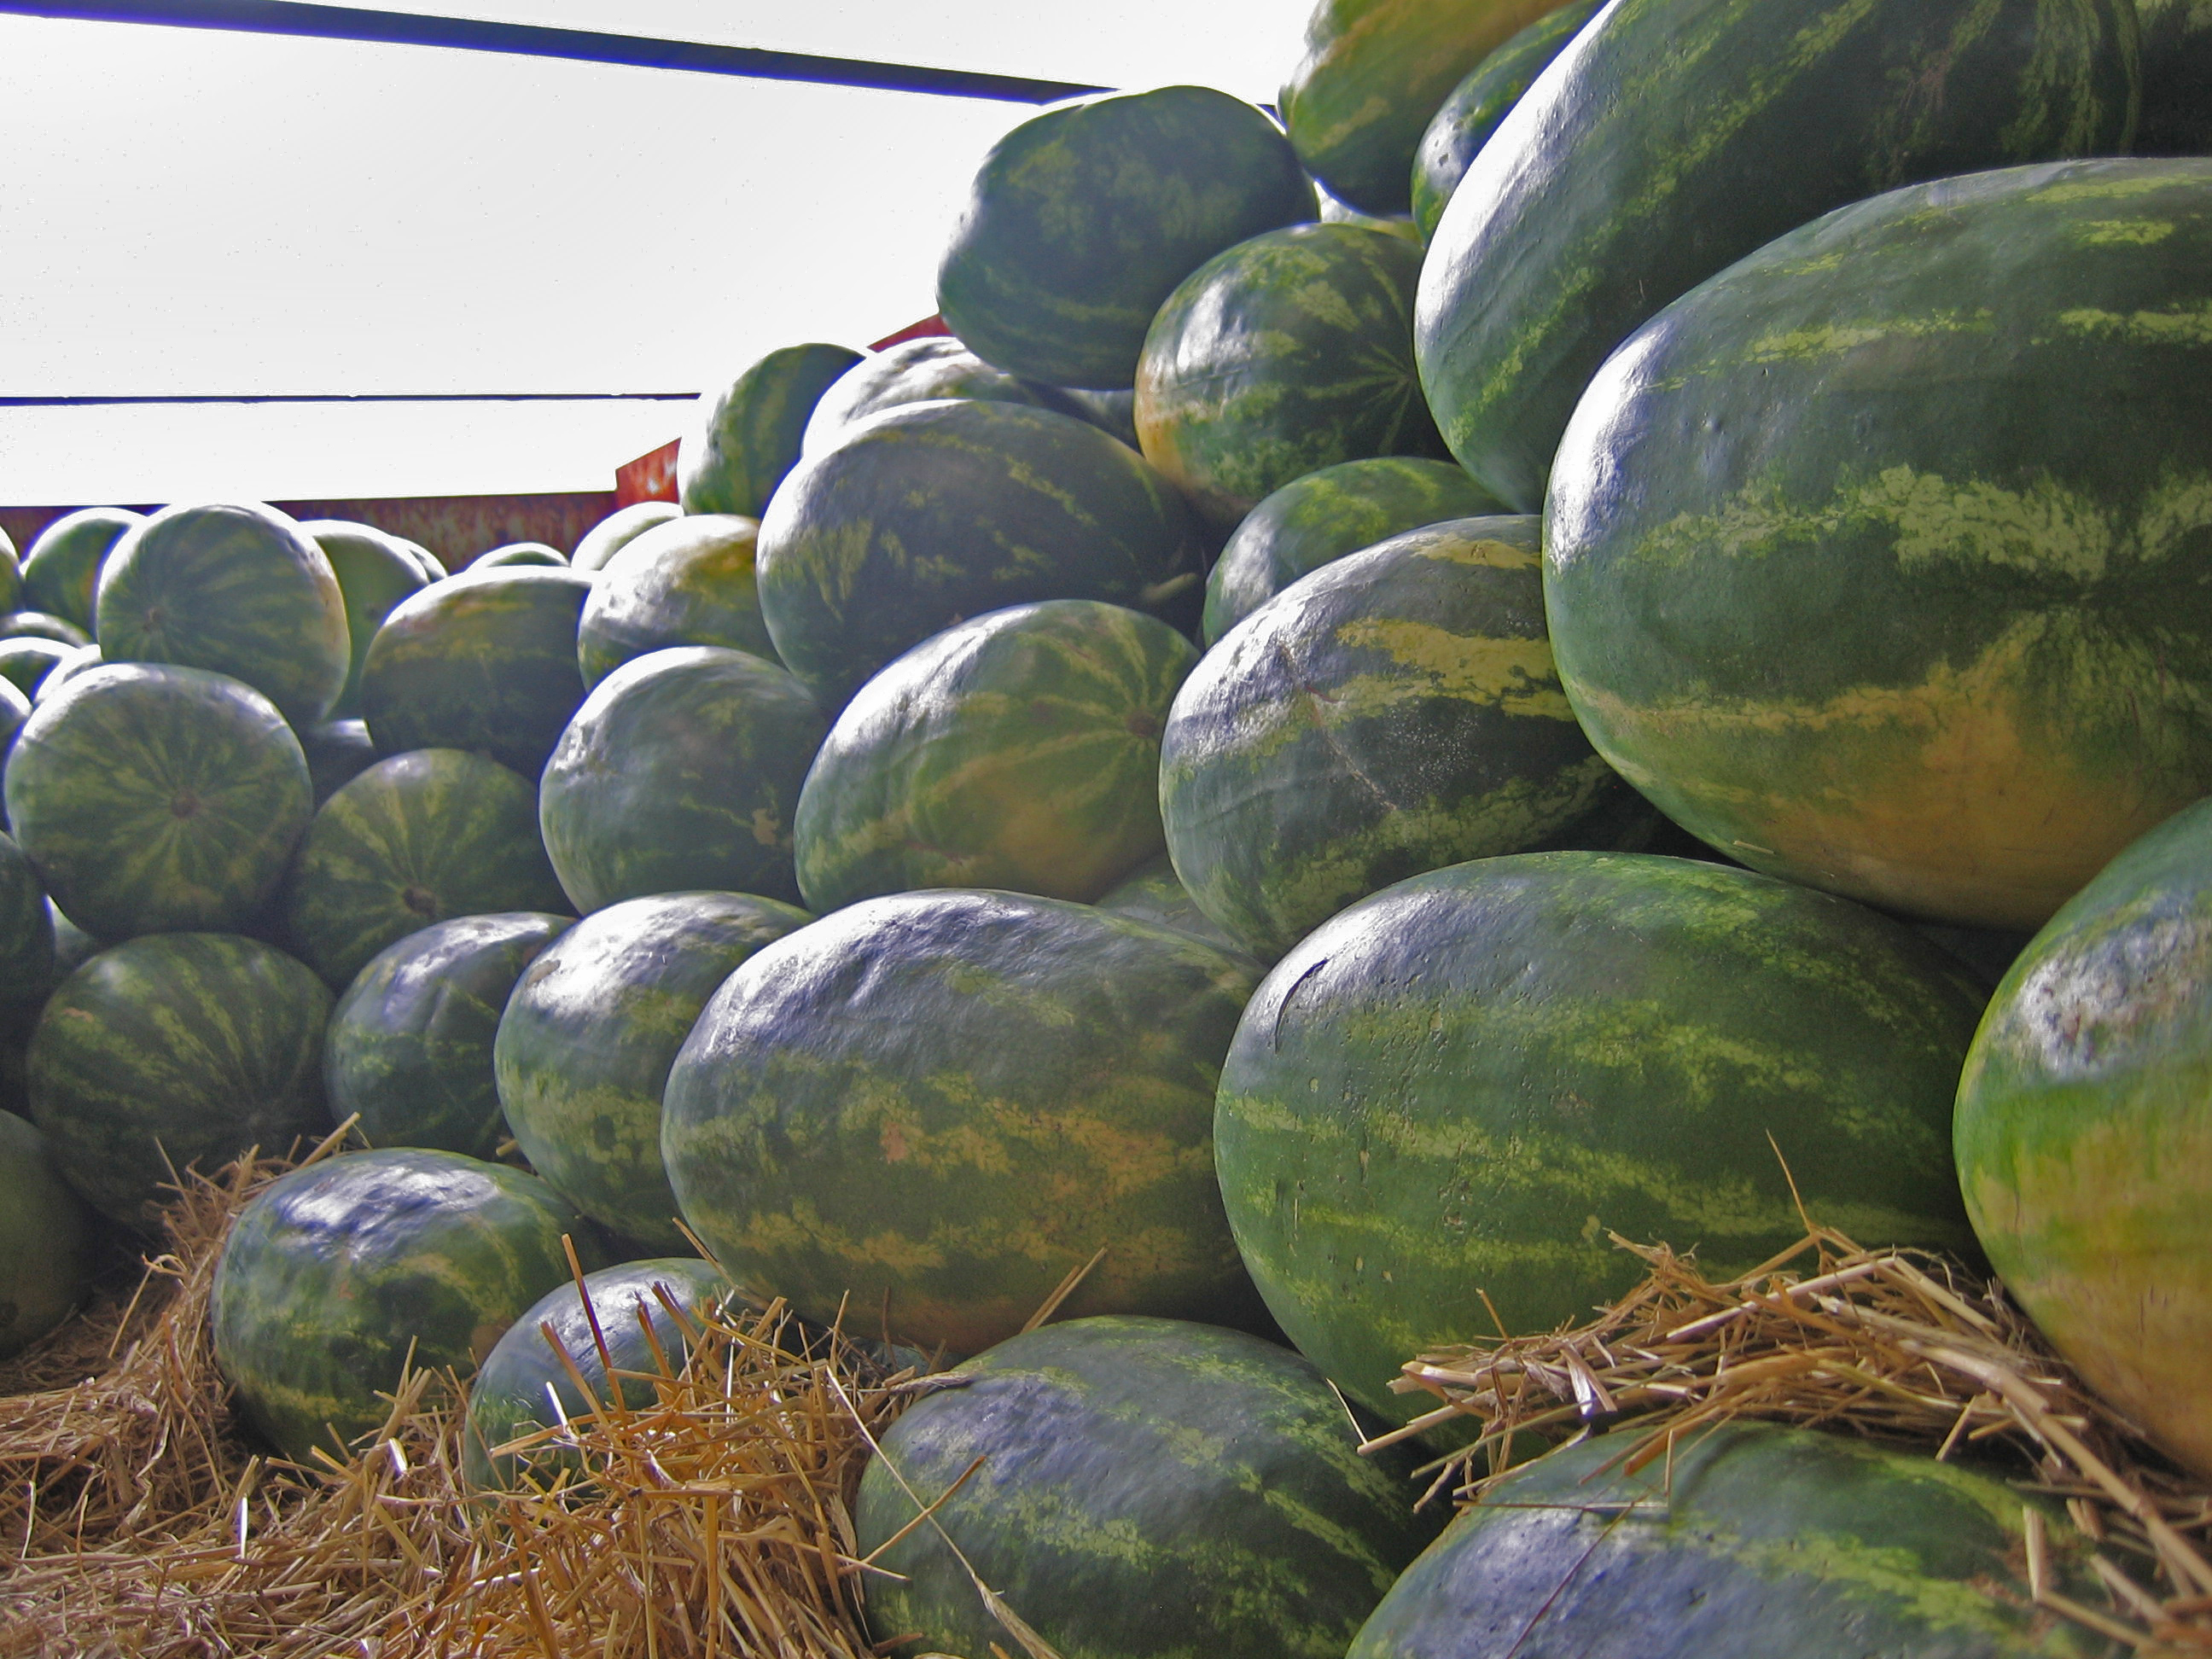 Georgia watermelons harvested for delivery.